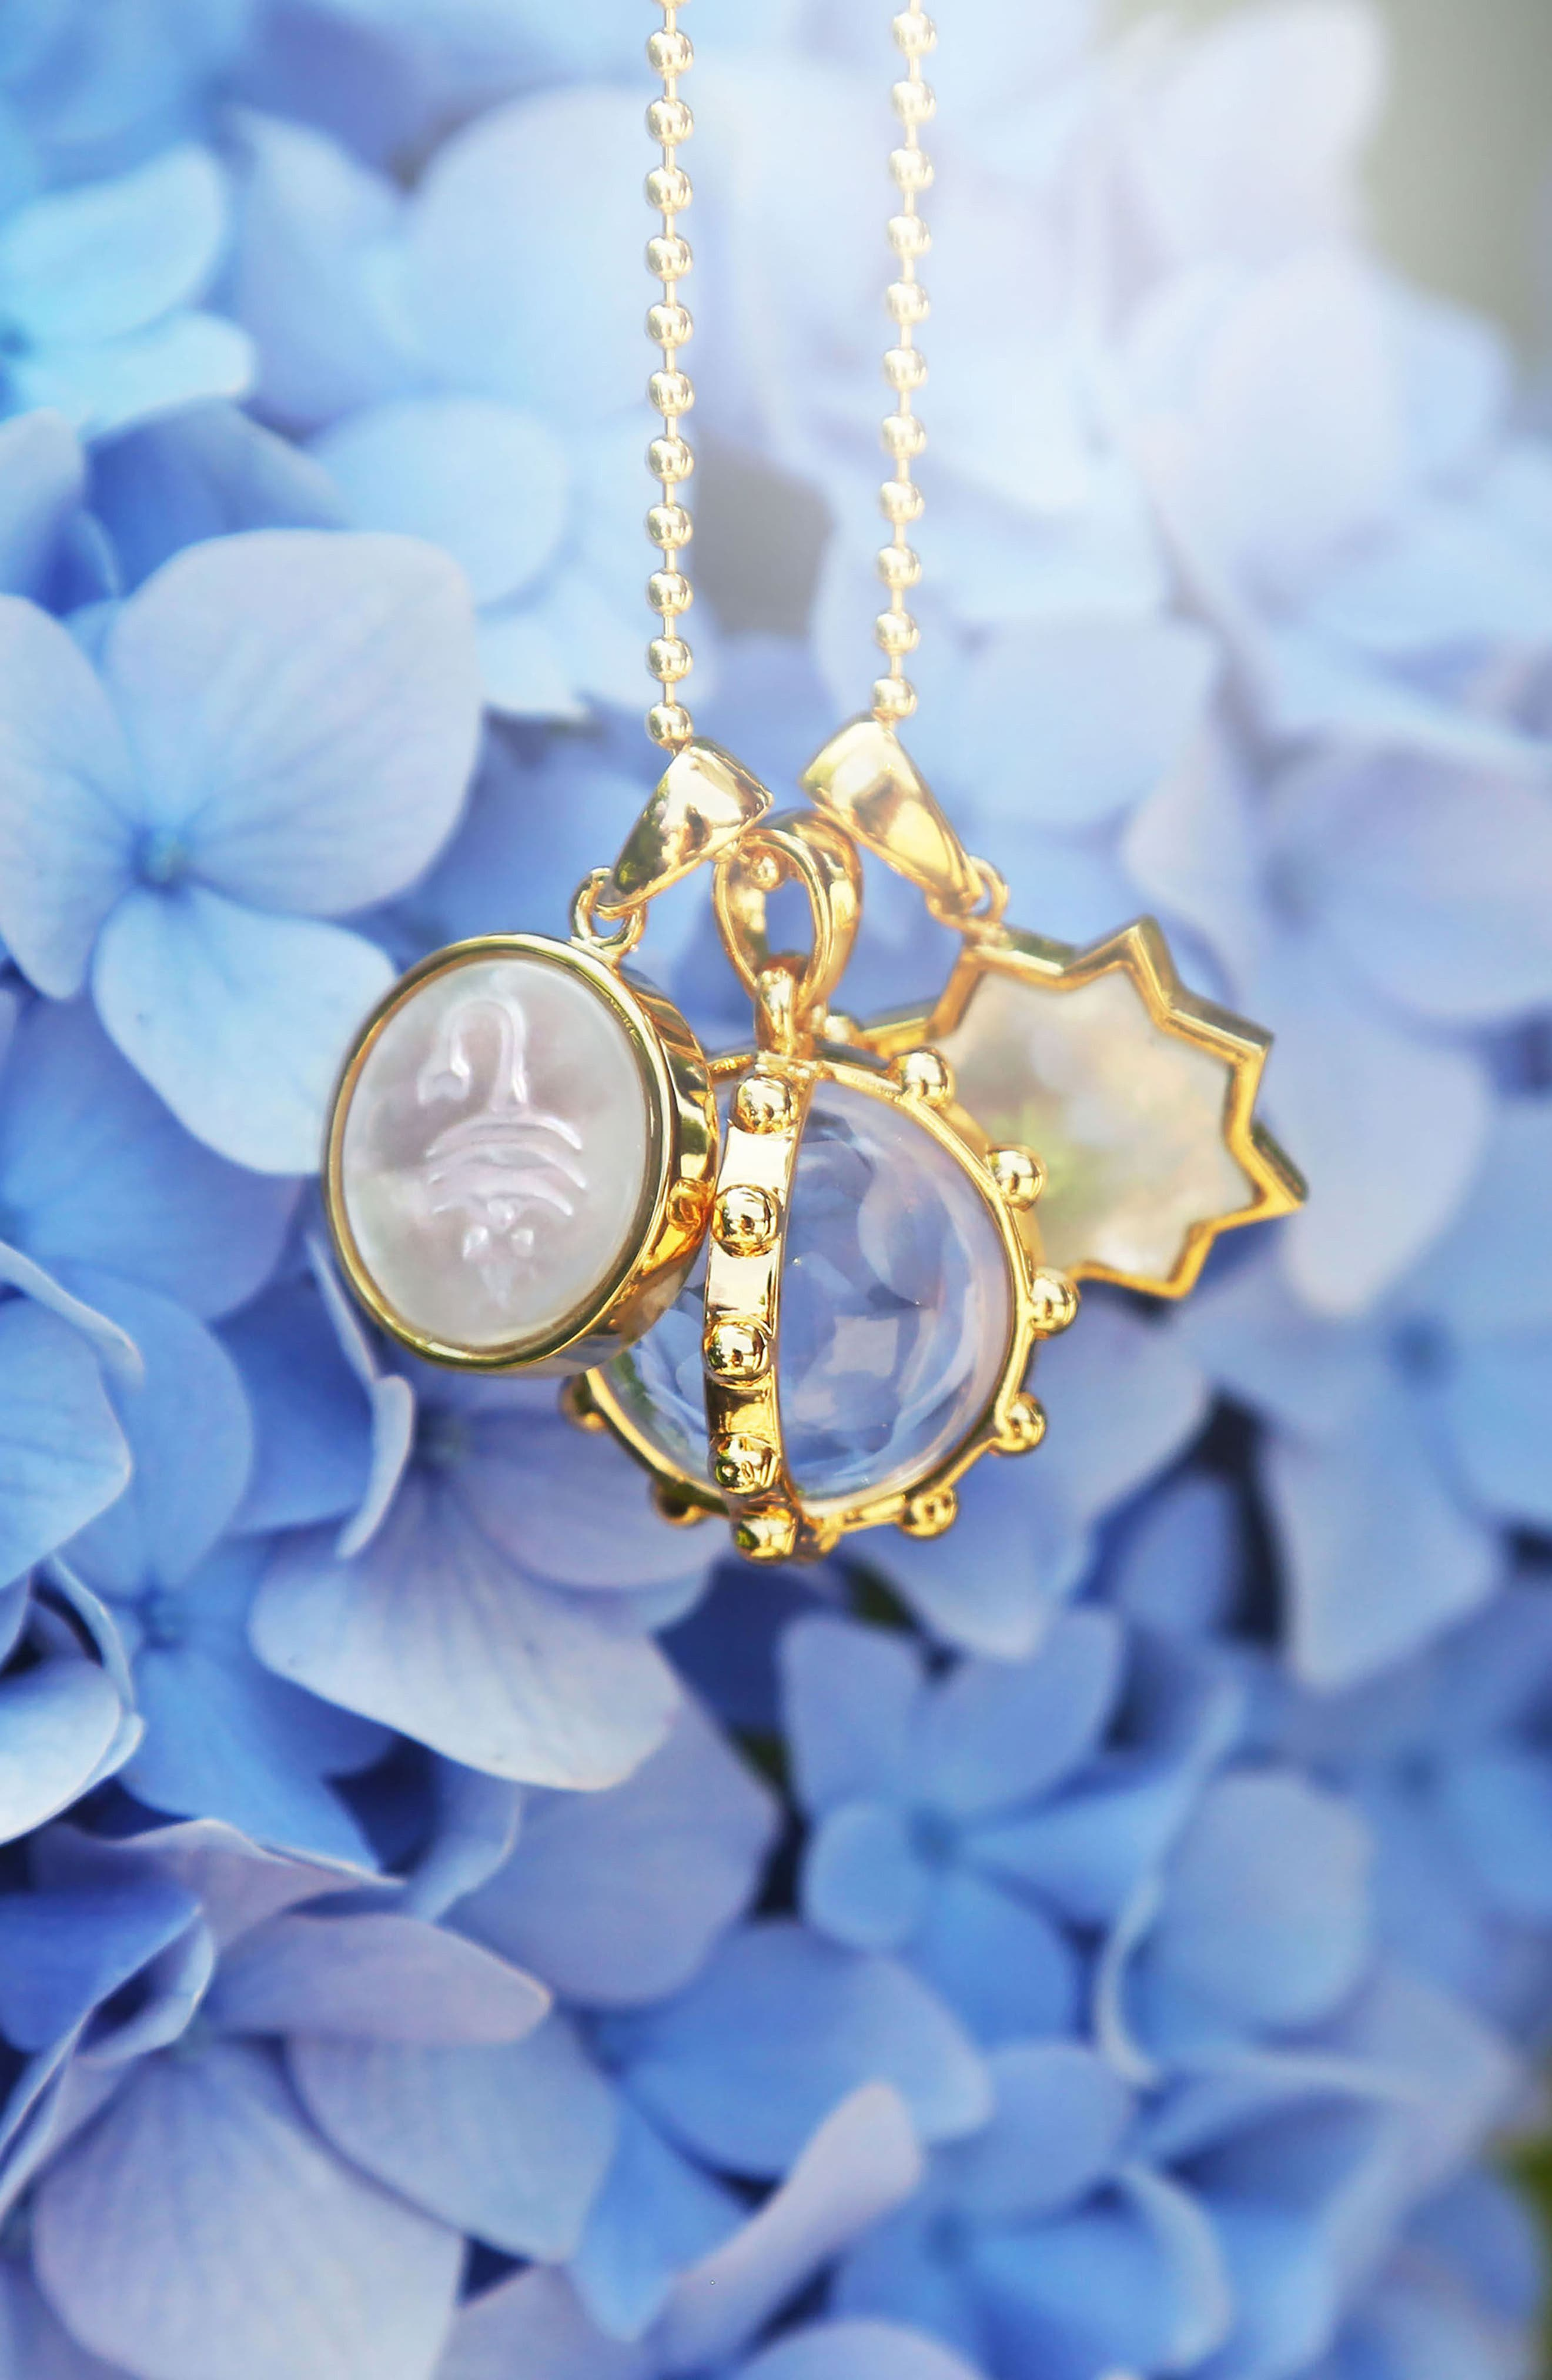 Zodiac Mother-of-Pearl Charm,                             Alternate thumbnail 2, color,